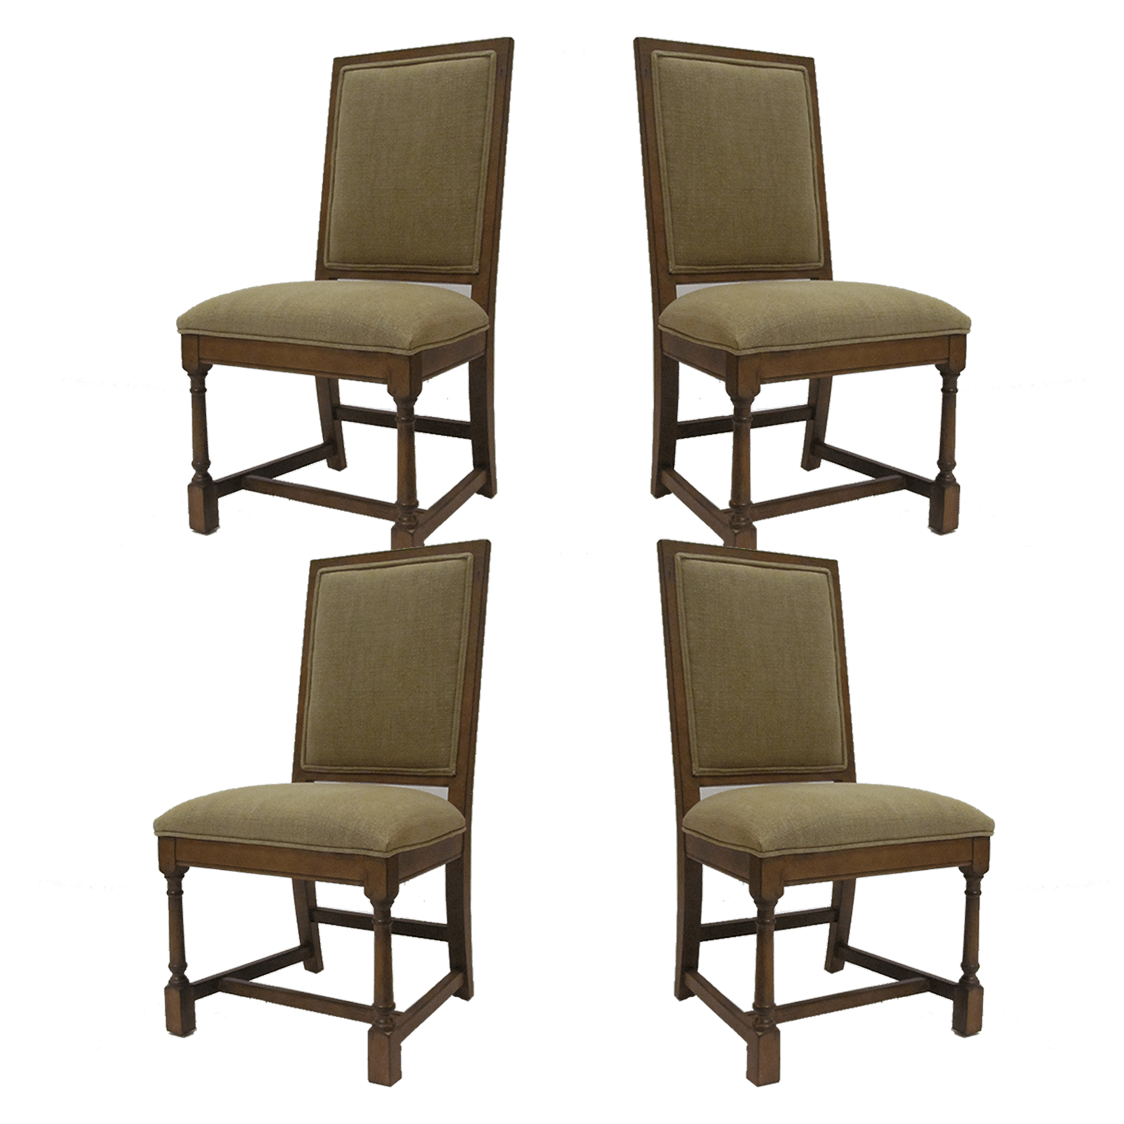 Exeter Side Chair. Century. 254118_Artistic_Frame_Lolling_Side_Chair